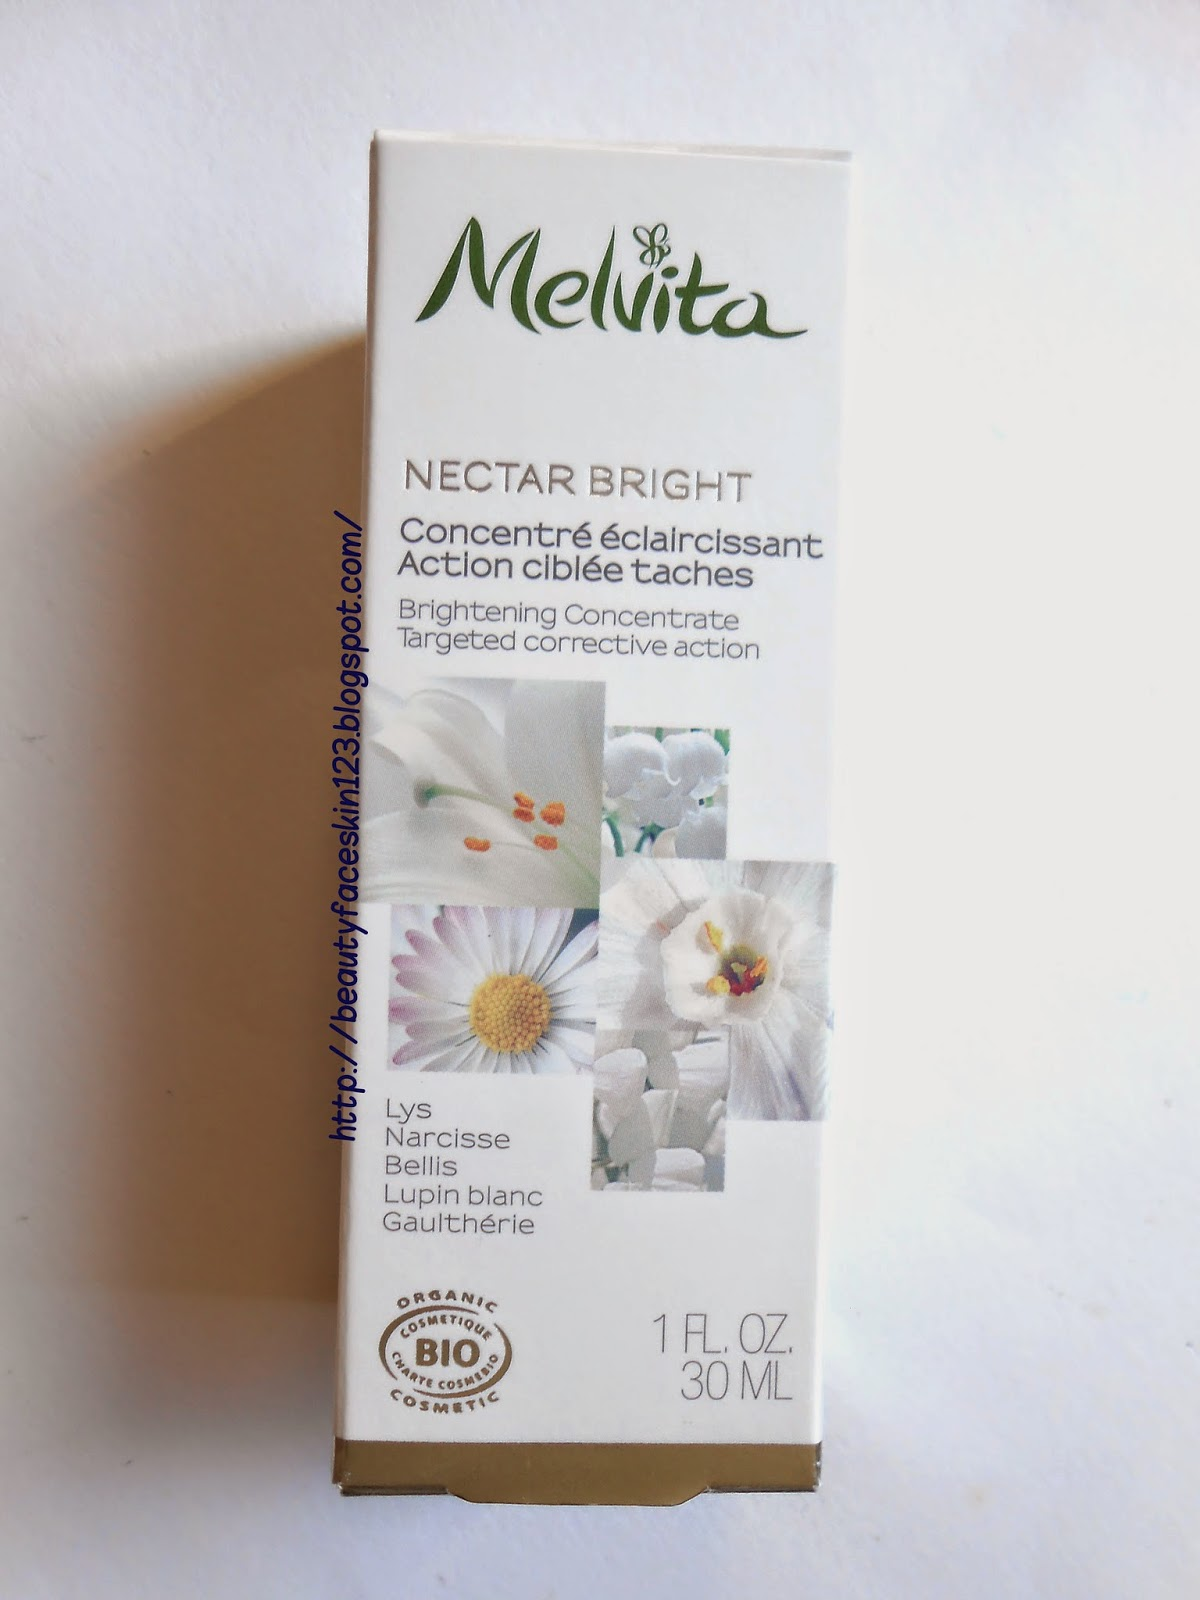 MELVITA NECTAR BRIGHT BRIGHTENING CONCENTRATE